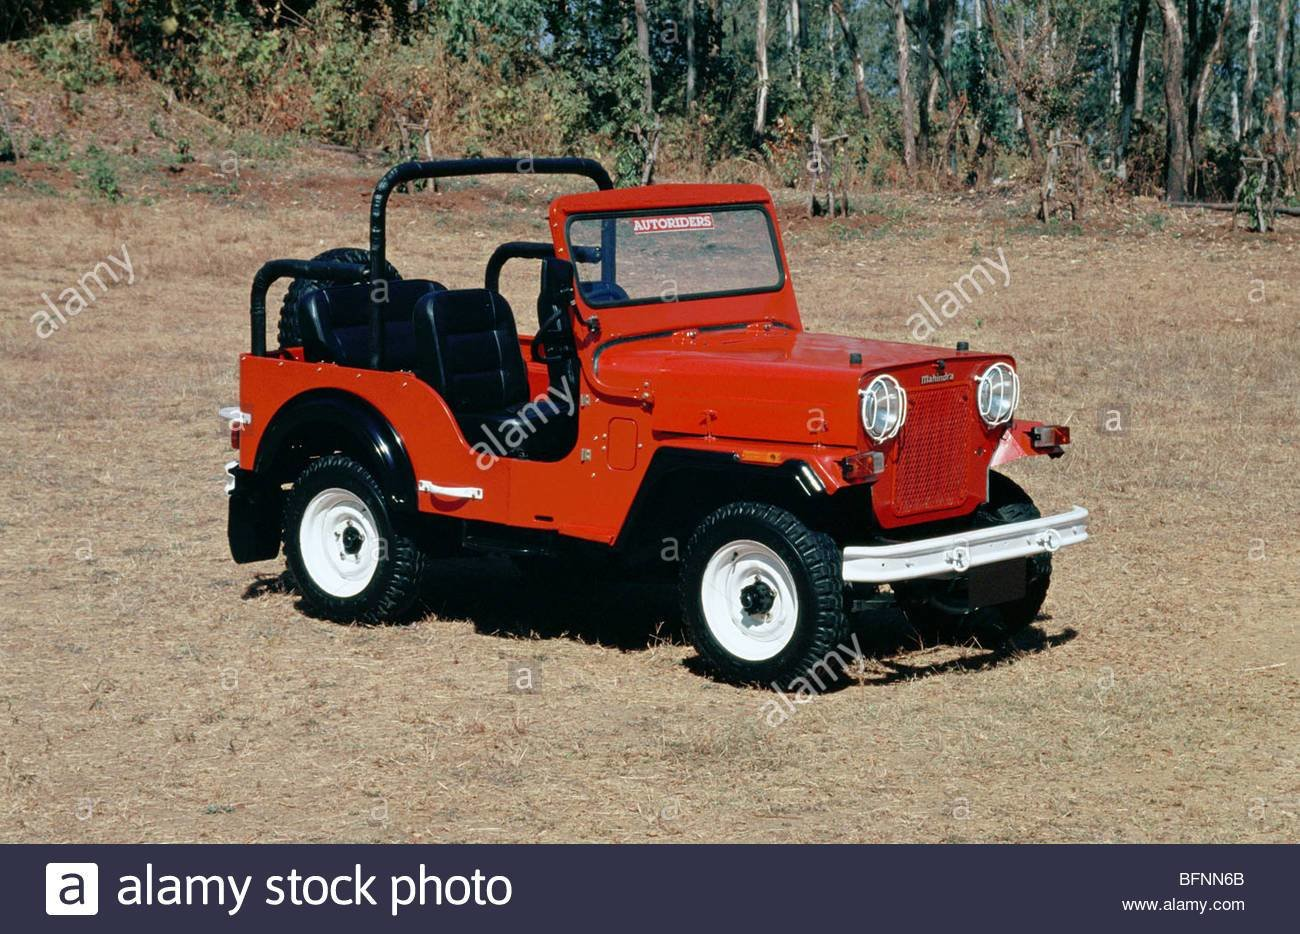 Latest Mahindra Jeep Stock Photos Mahindra Jeep Stock Images Free Download